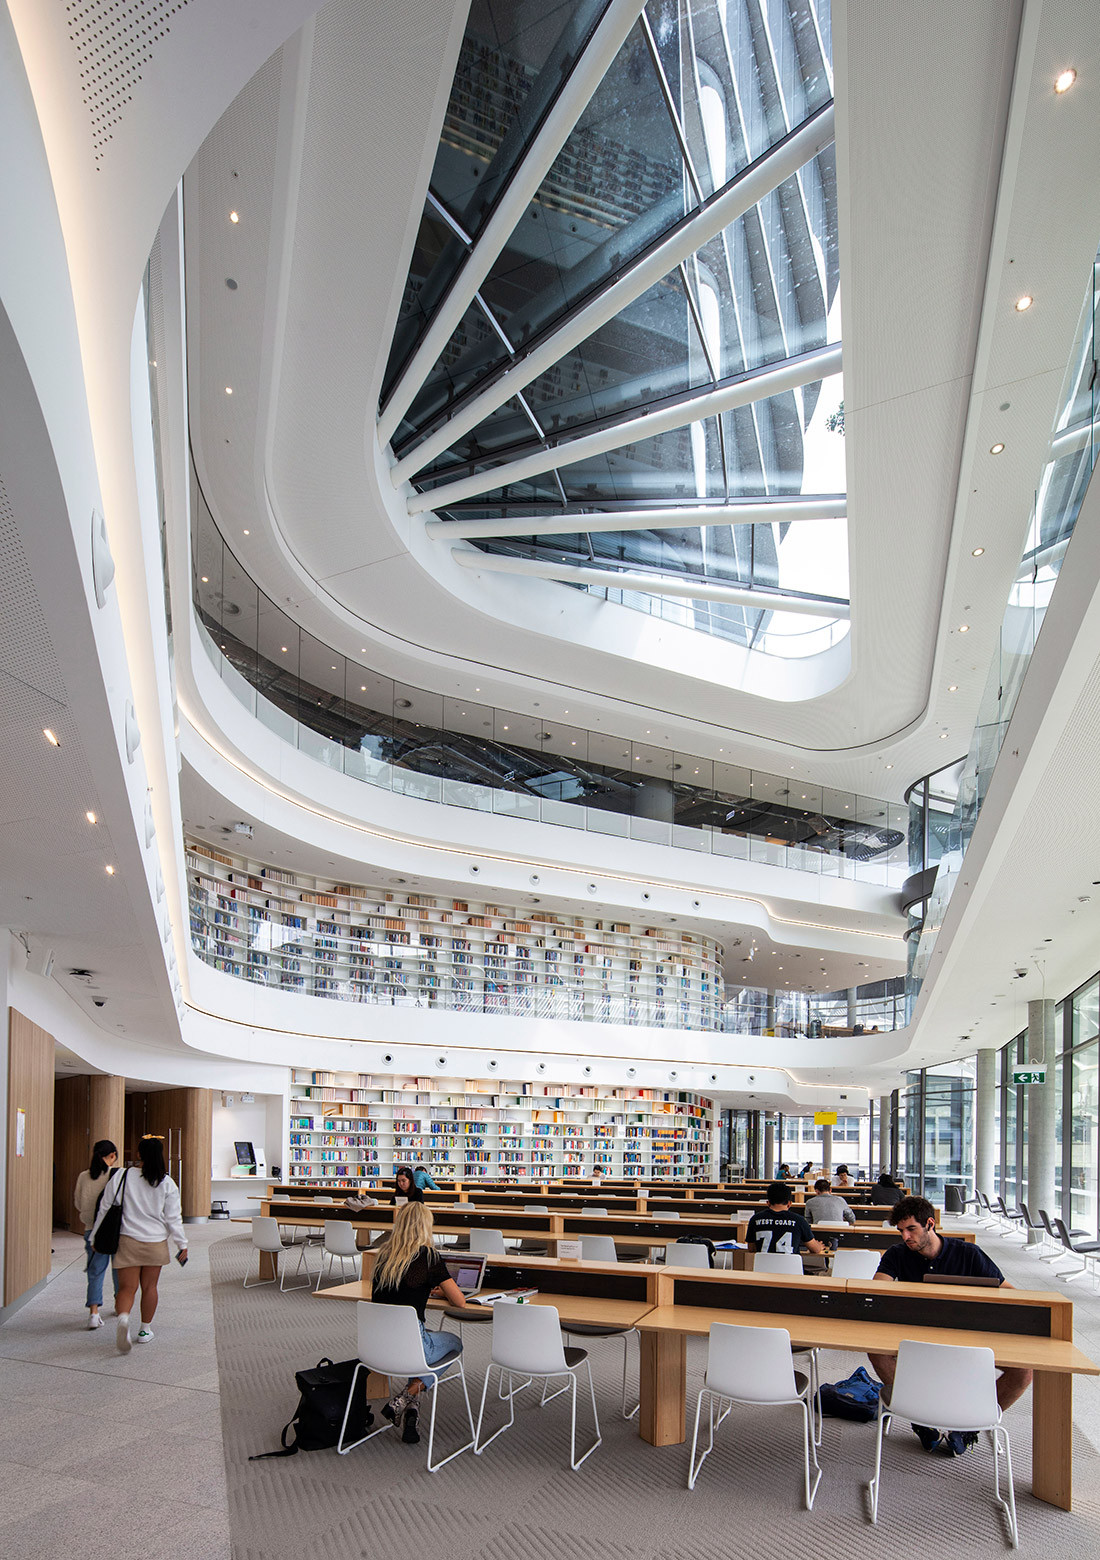 The reading room of the library at UTS Central, by FJMT, is expansive and filled with light. Photo by John Gollings.